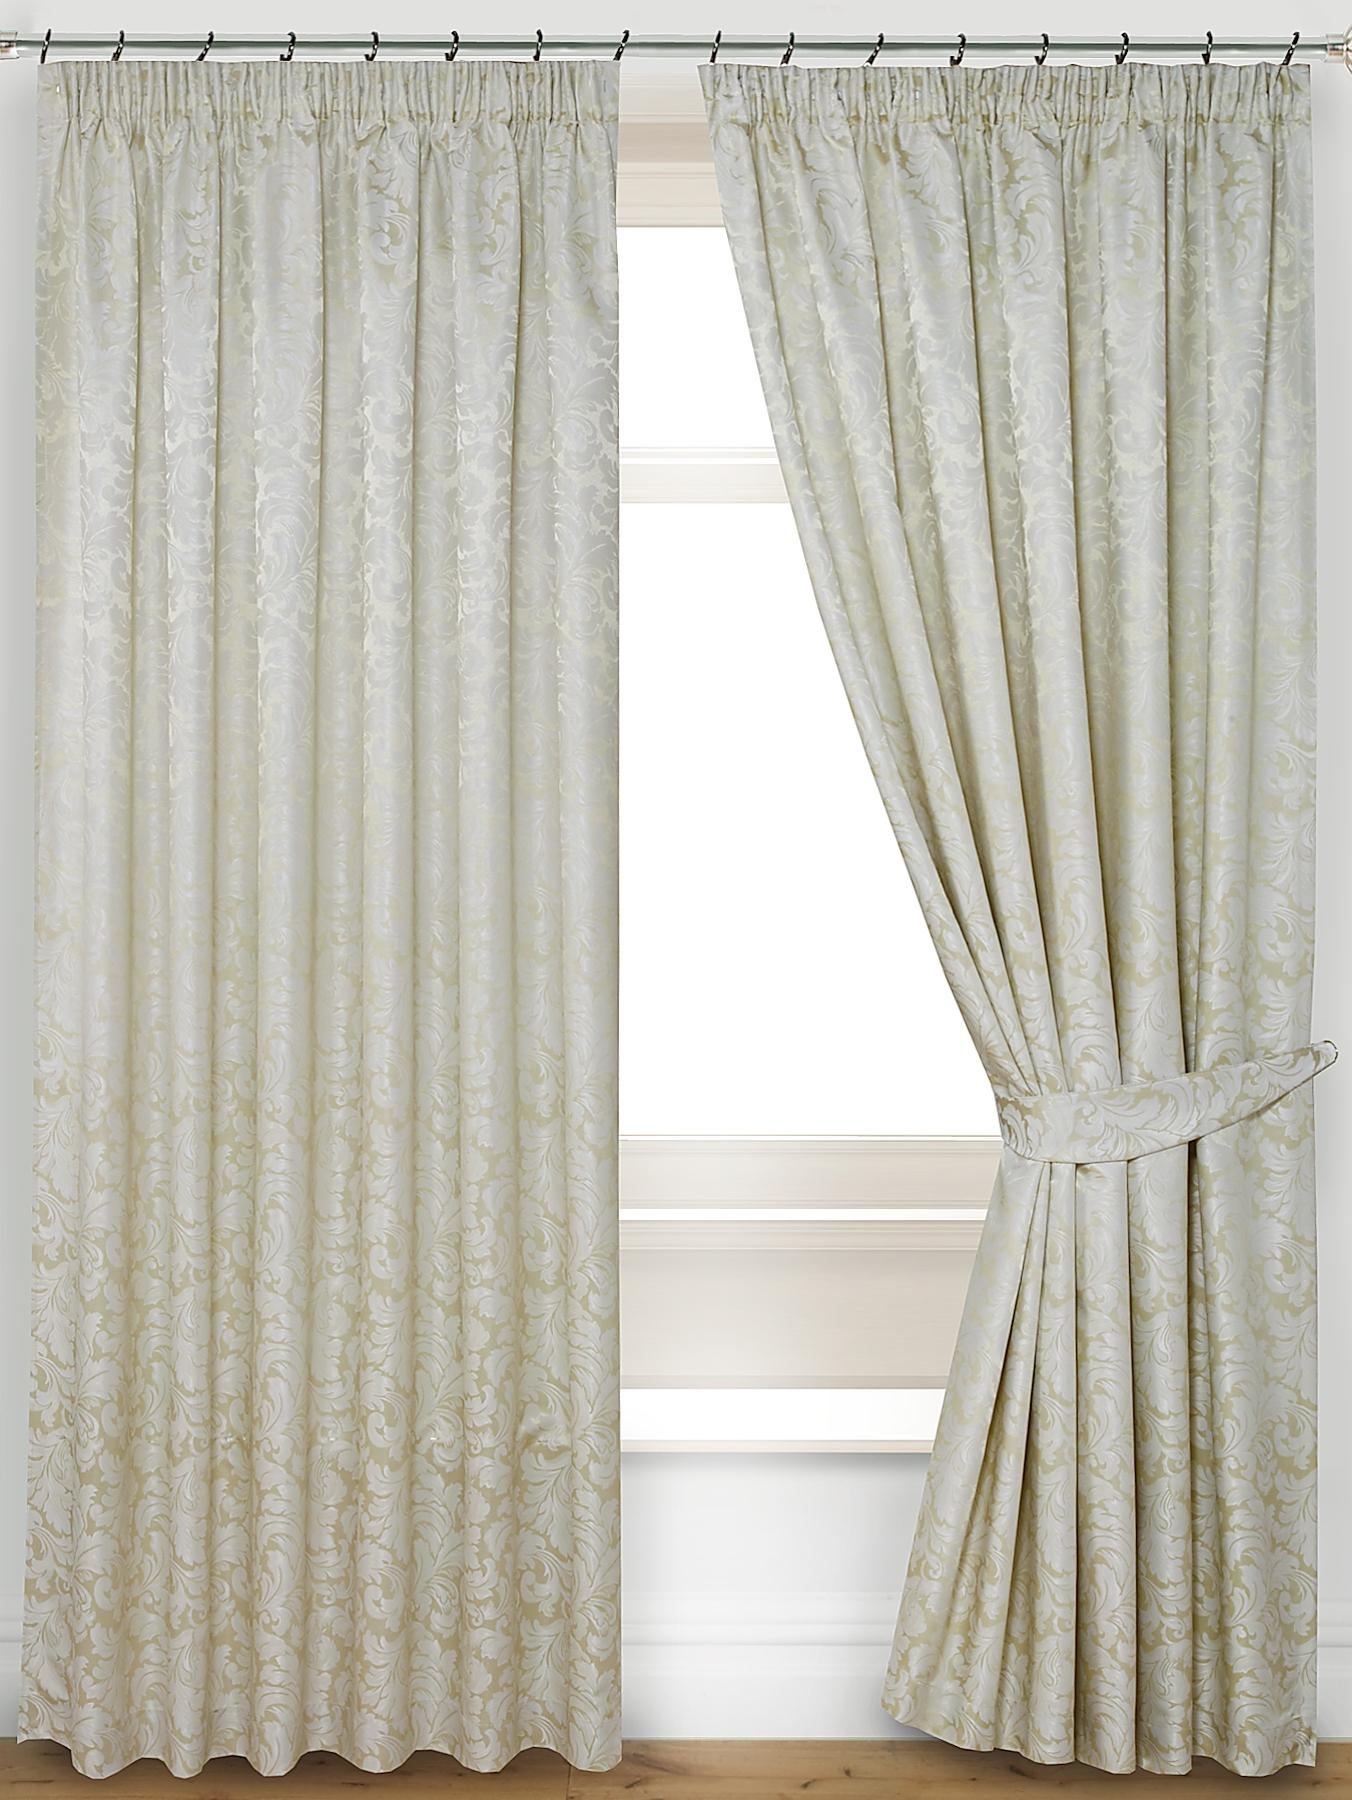 Pompeii Lined Pleated Curtains with Tie-Backs.